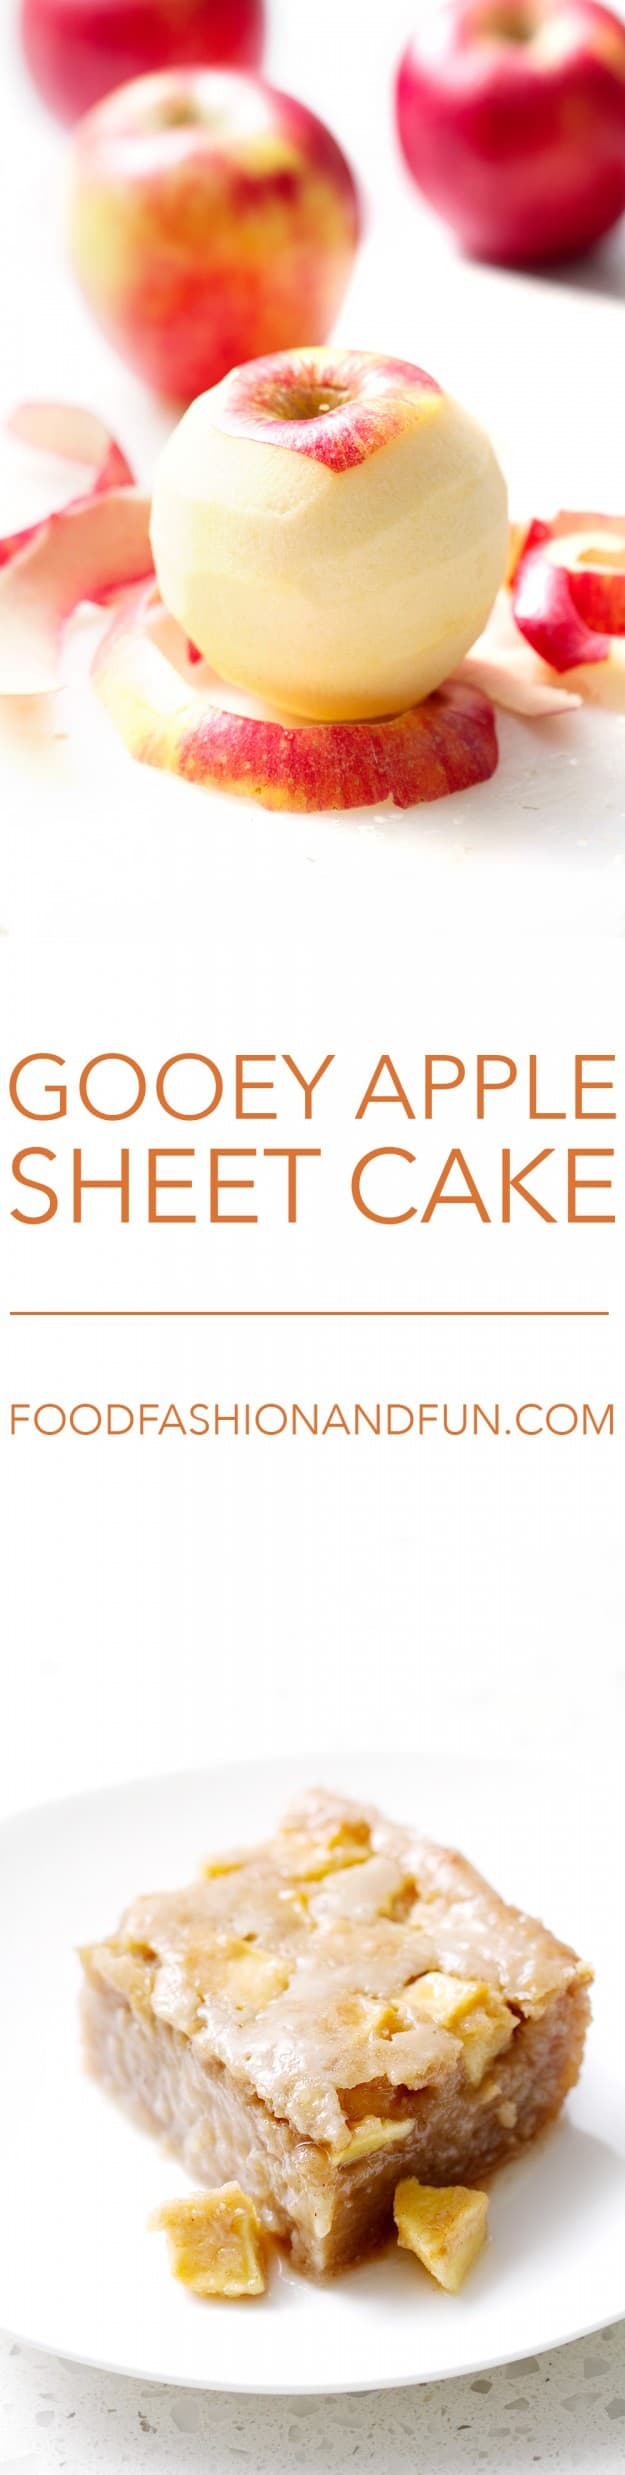 Gooey Apple Sheet Cake